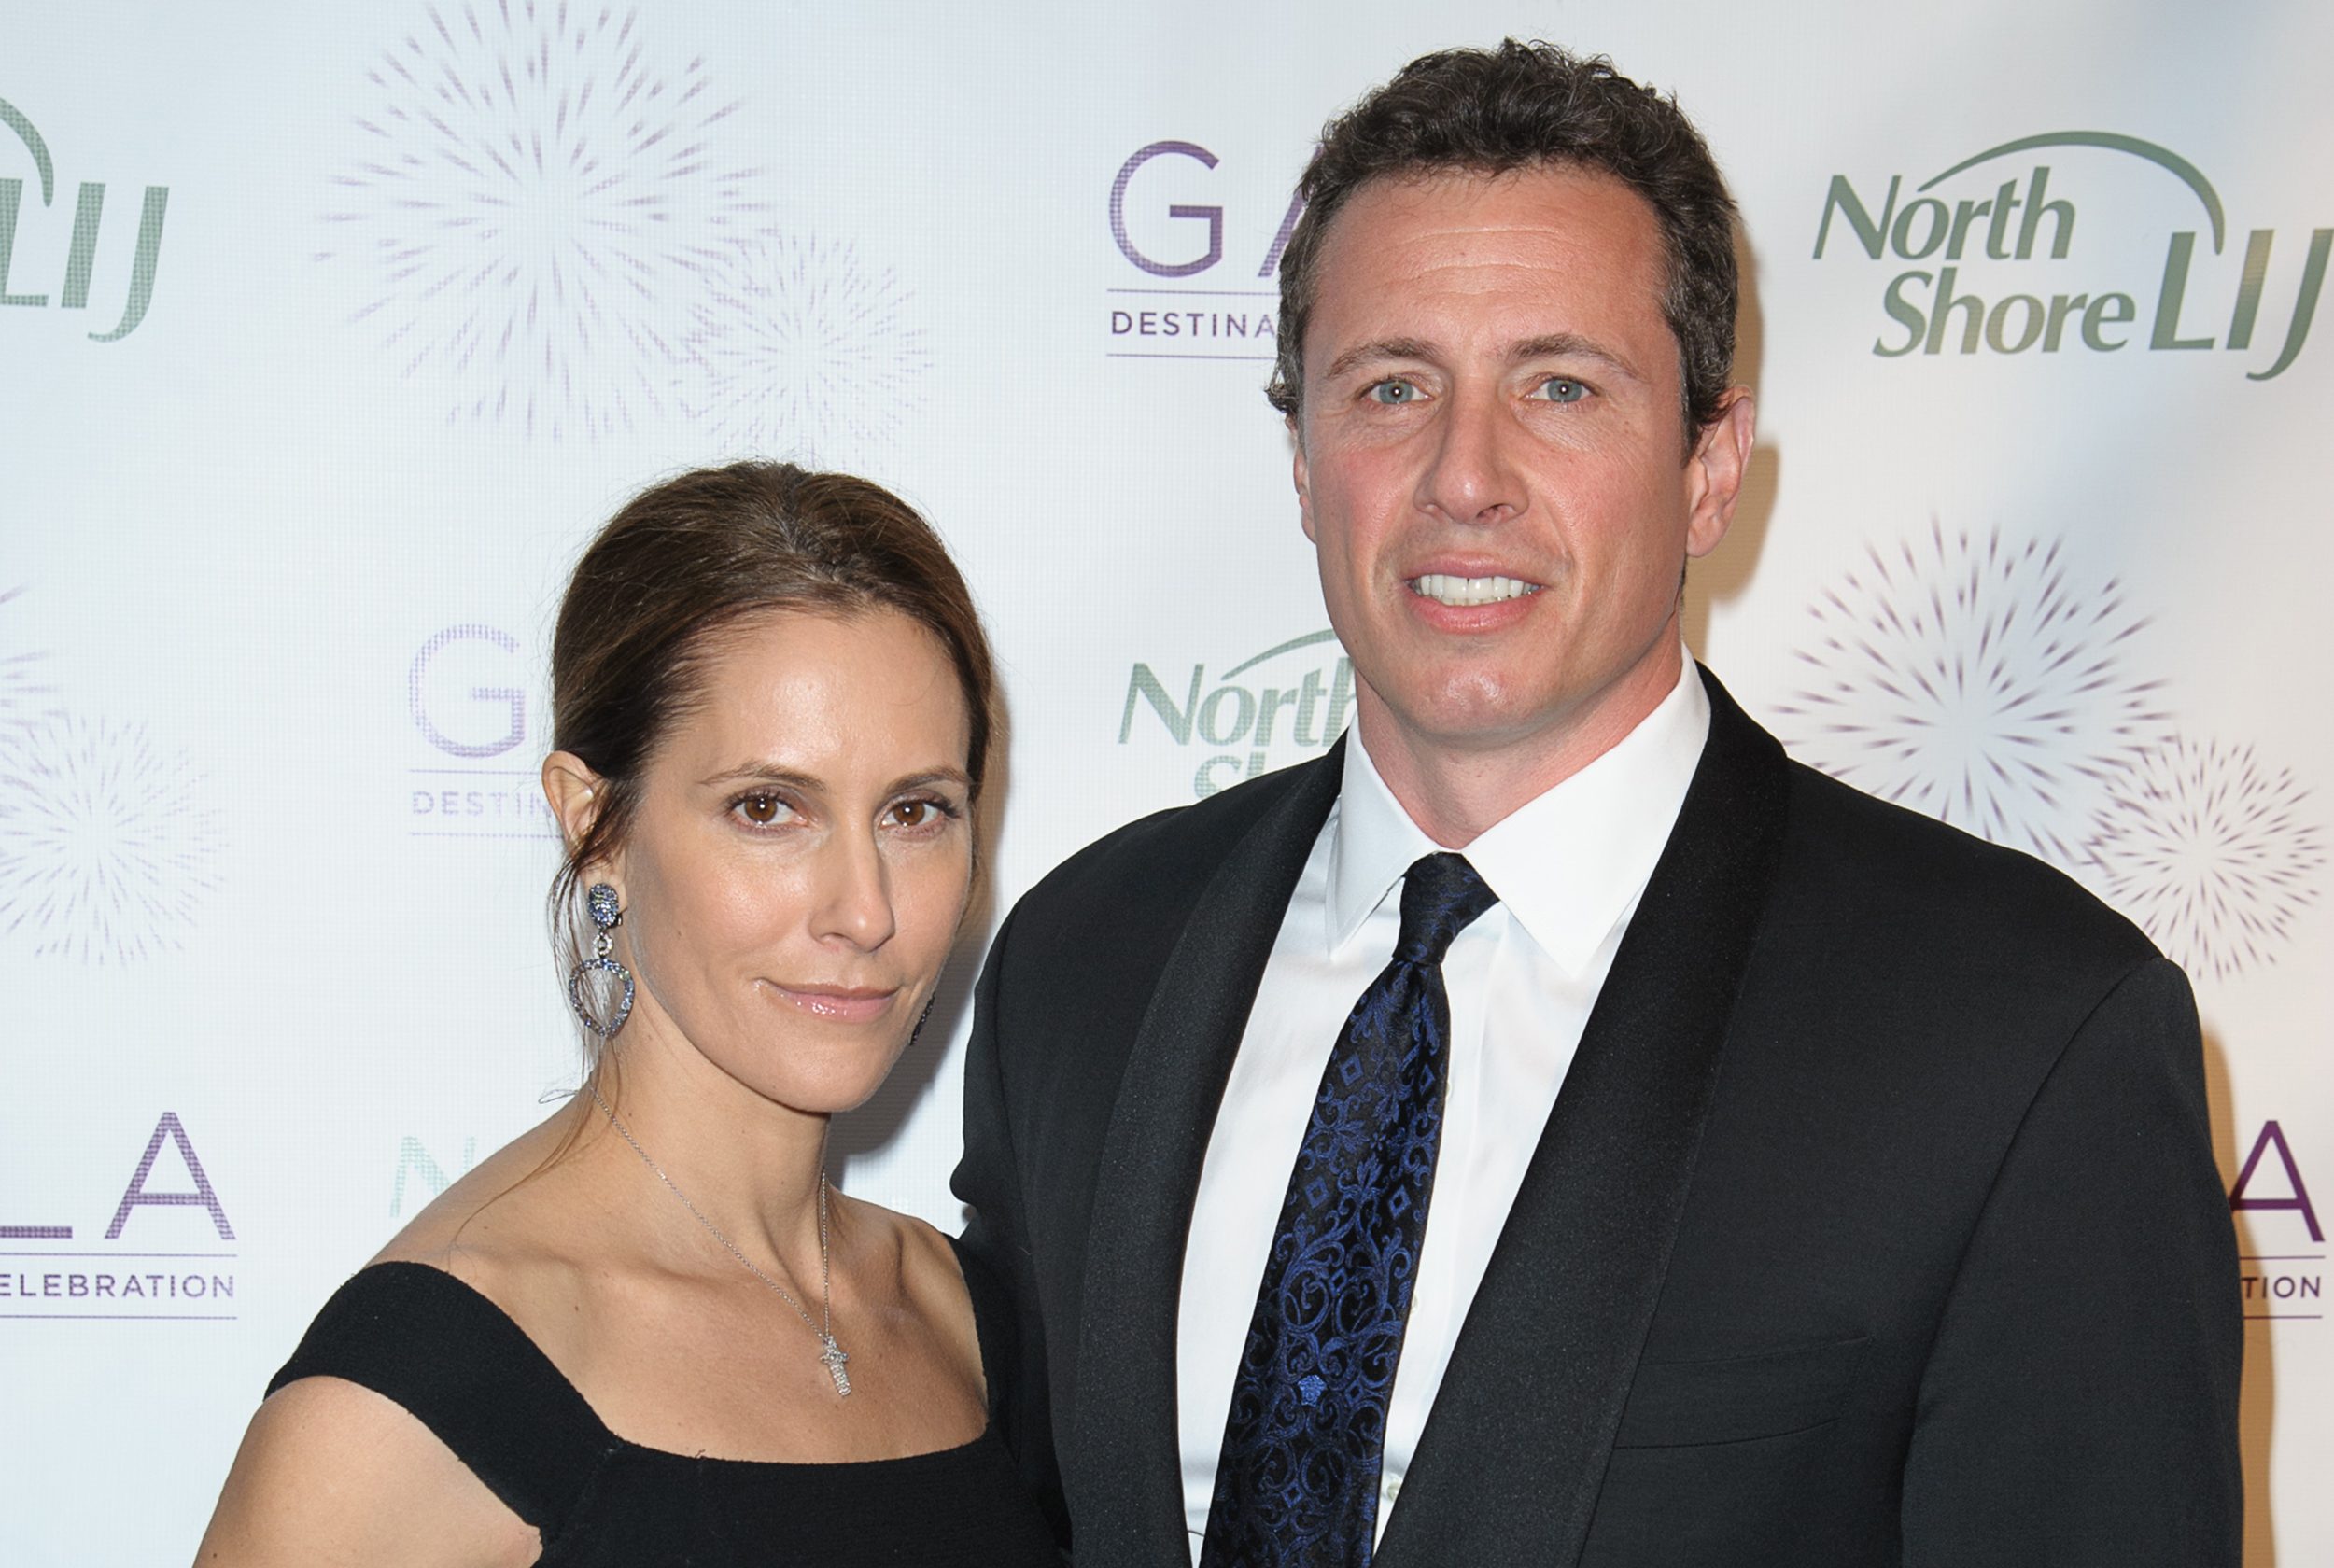 Did Chris Cuomo's wife help Jeffrey Epstein become filthy rich? – Film Daily - Film Daily